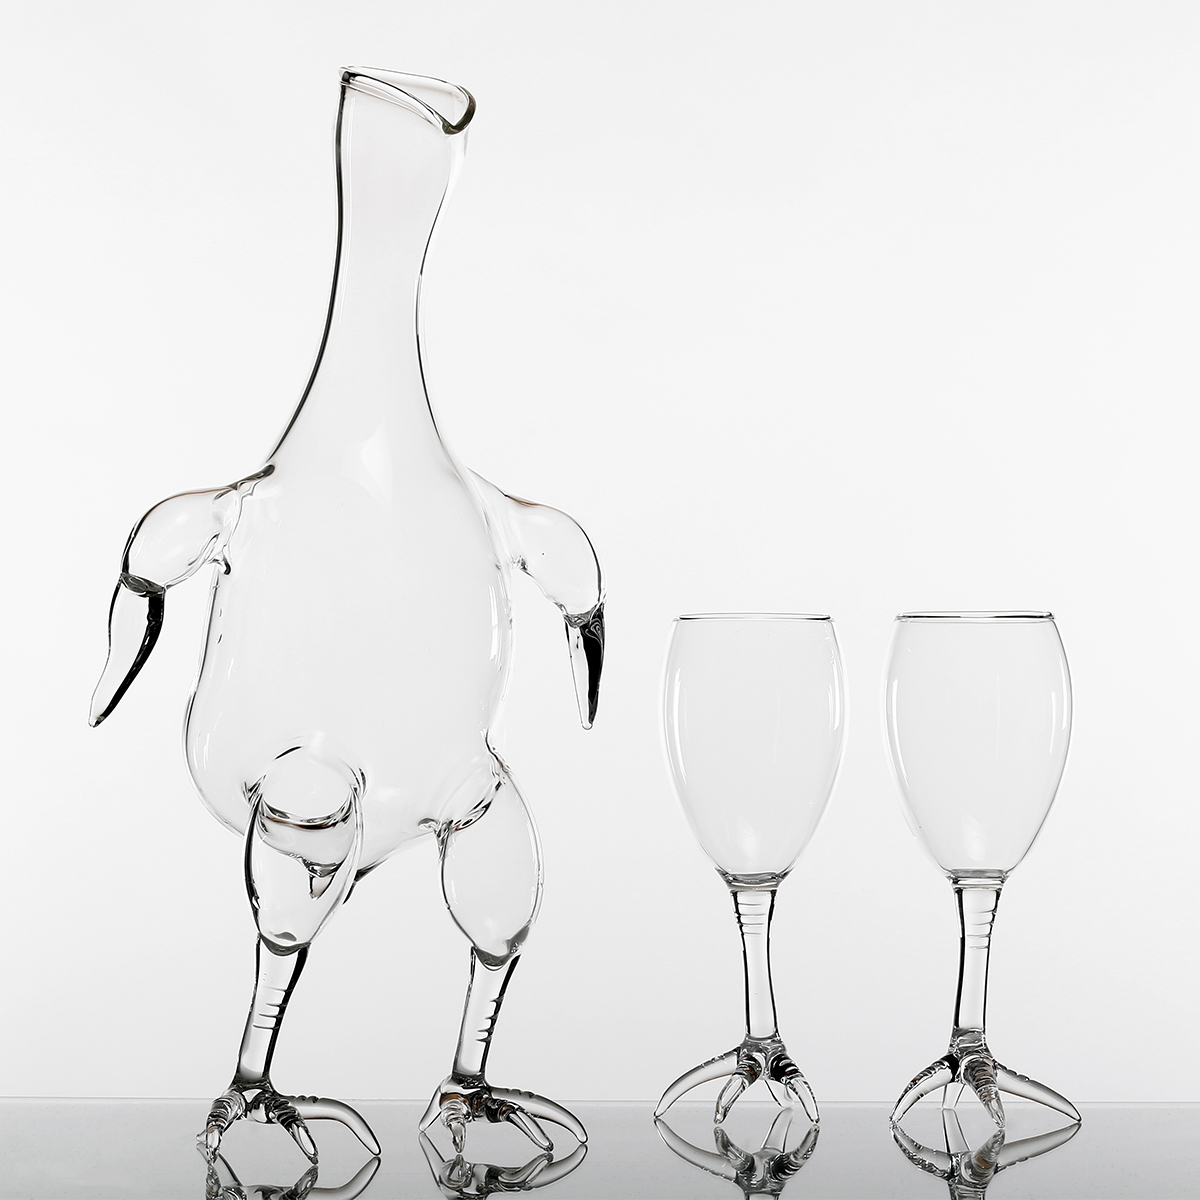 Hand-blown glass decanter and wineglasses